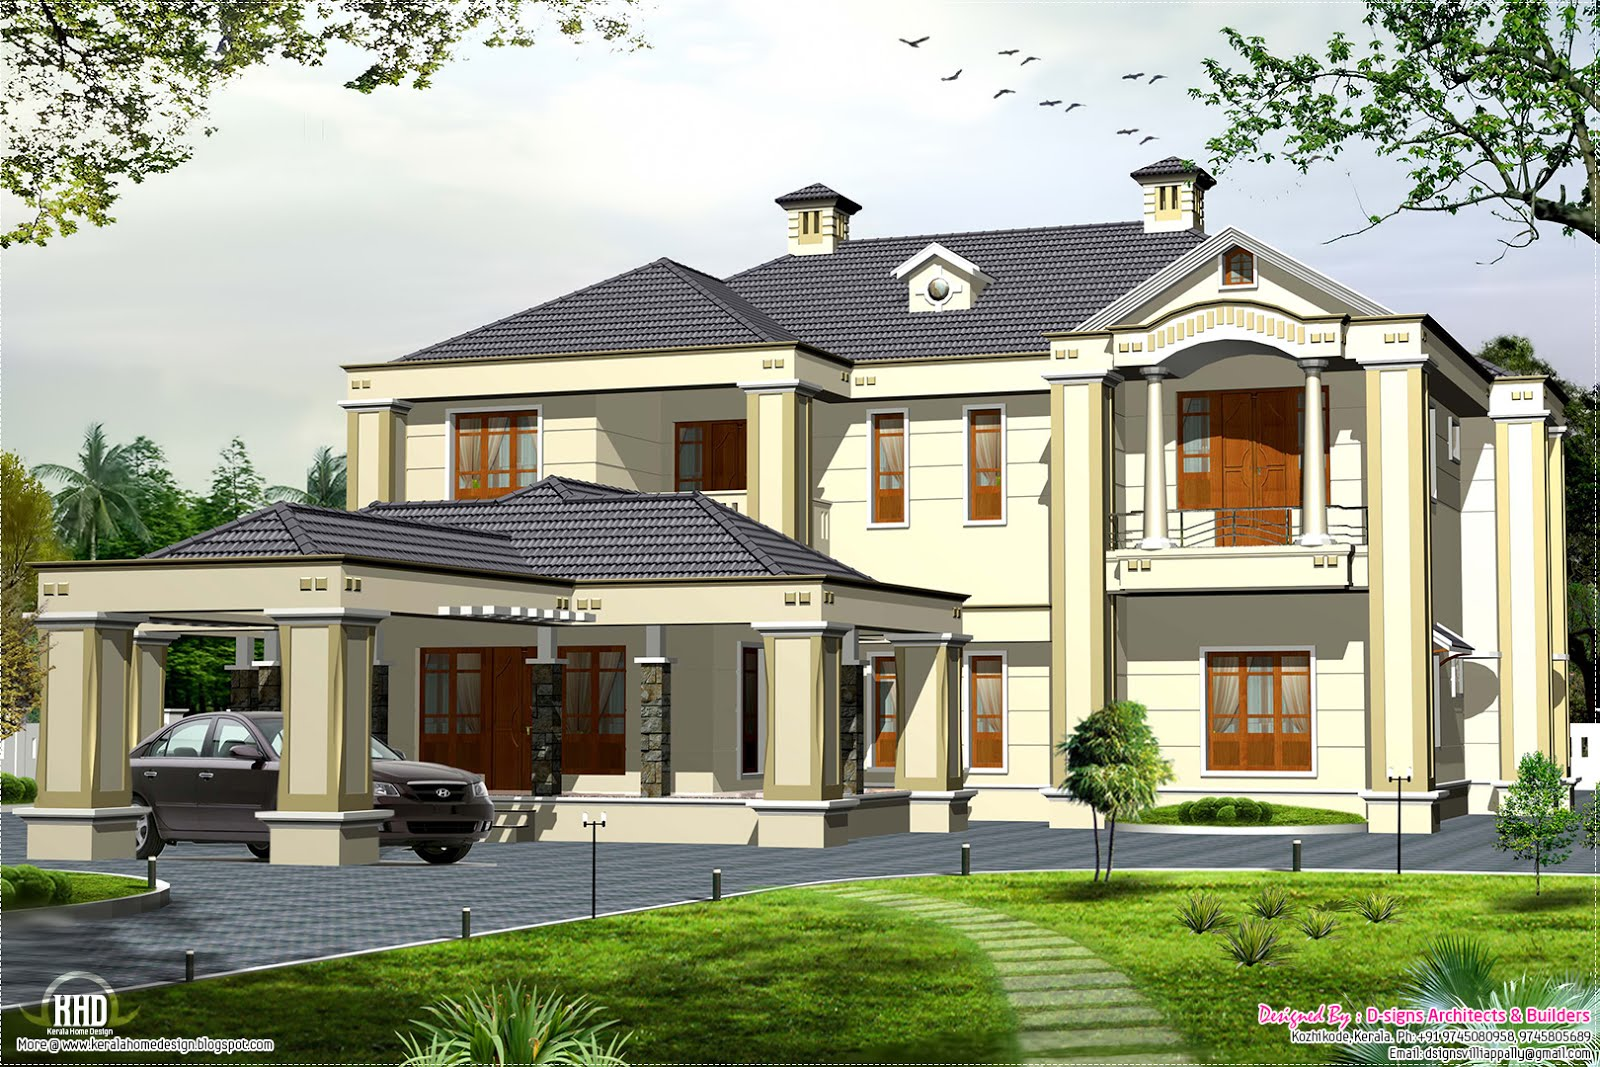 Top House Plans Colonial Style Homes 1600 x 1067 · 379 kB · jpeg